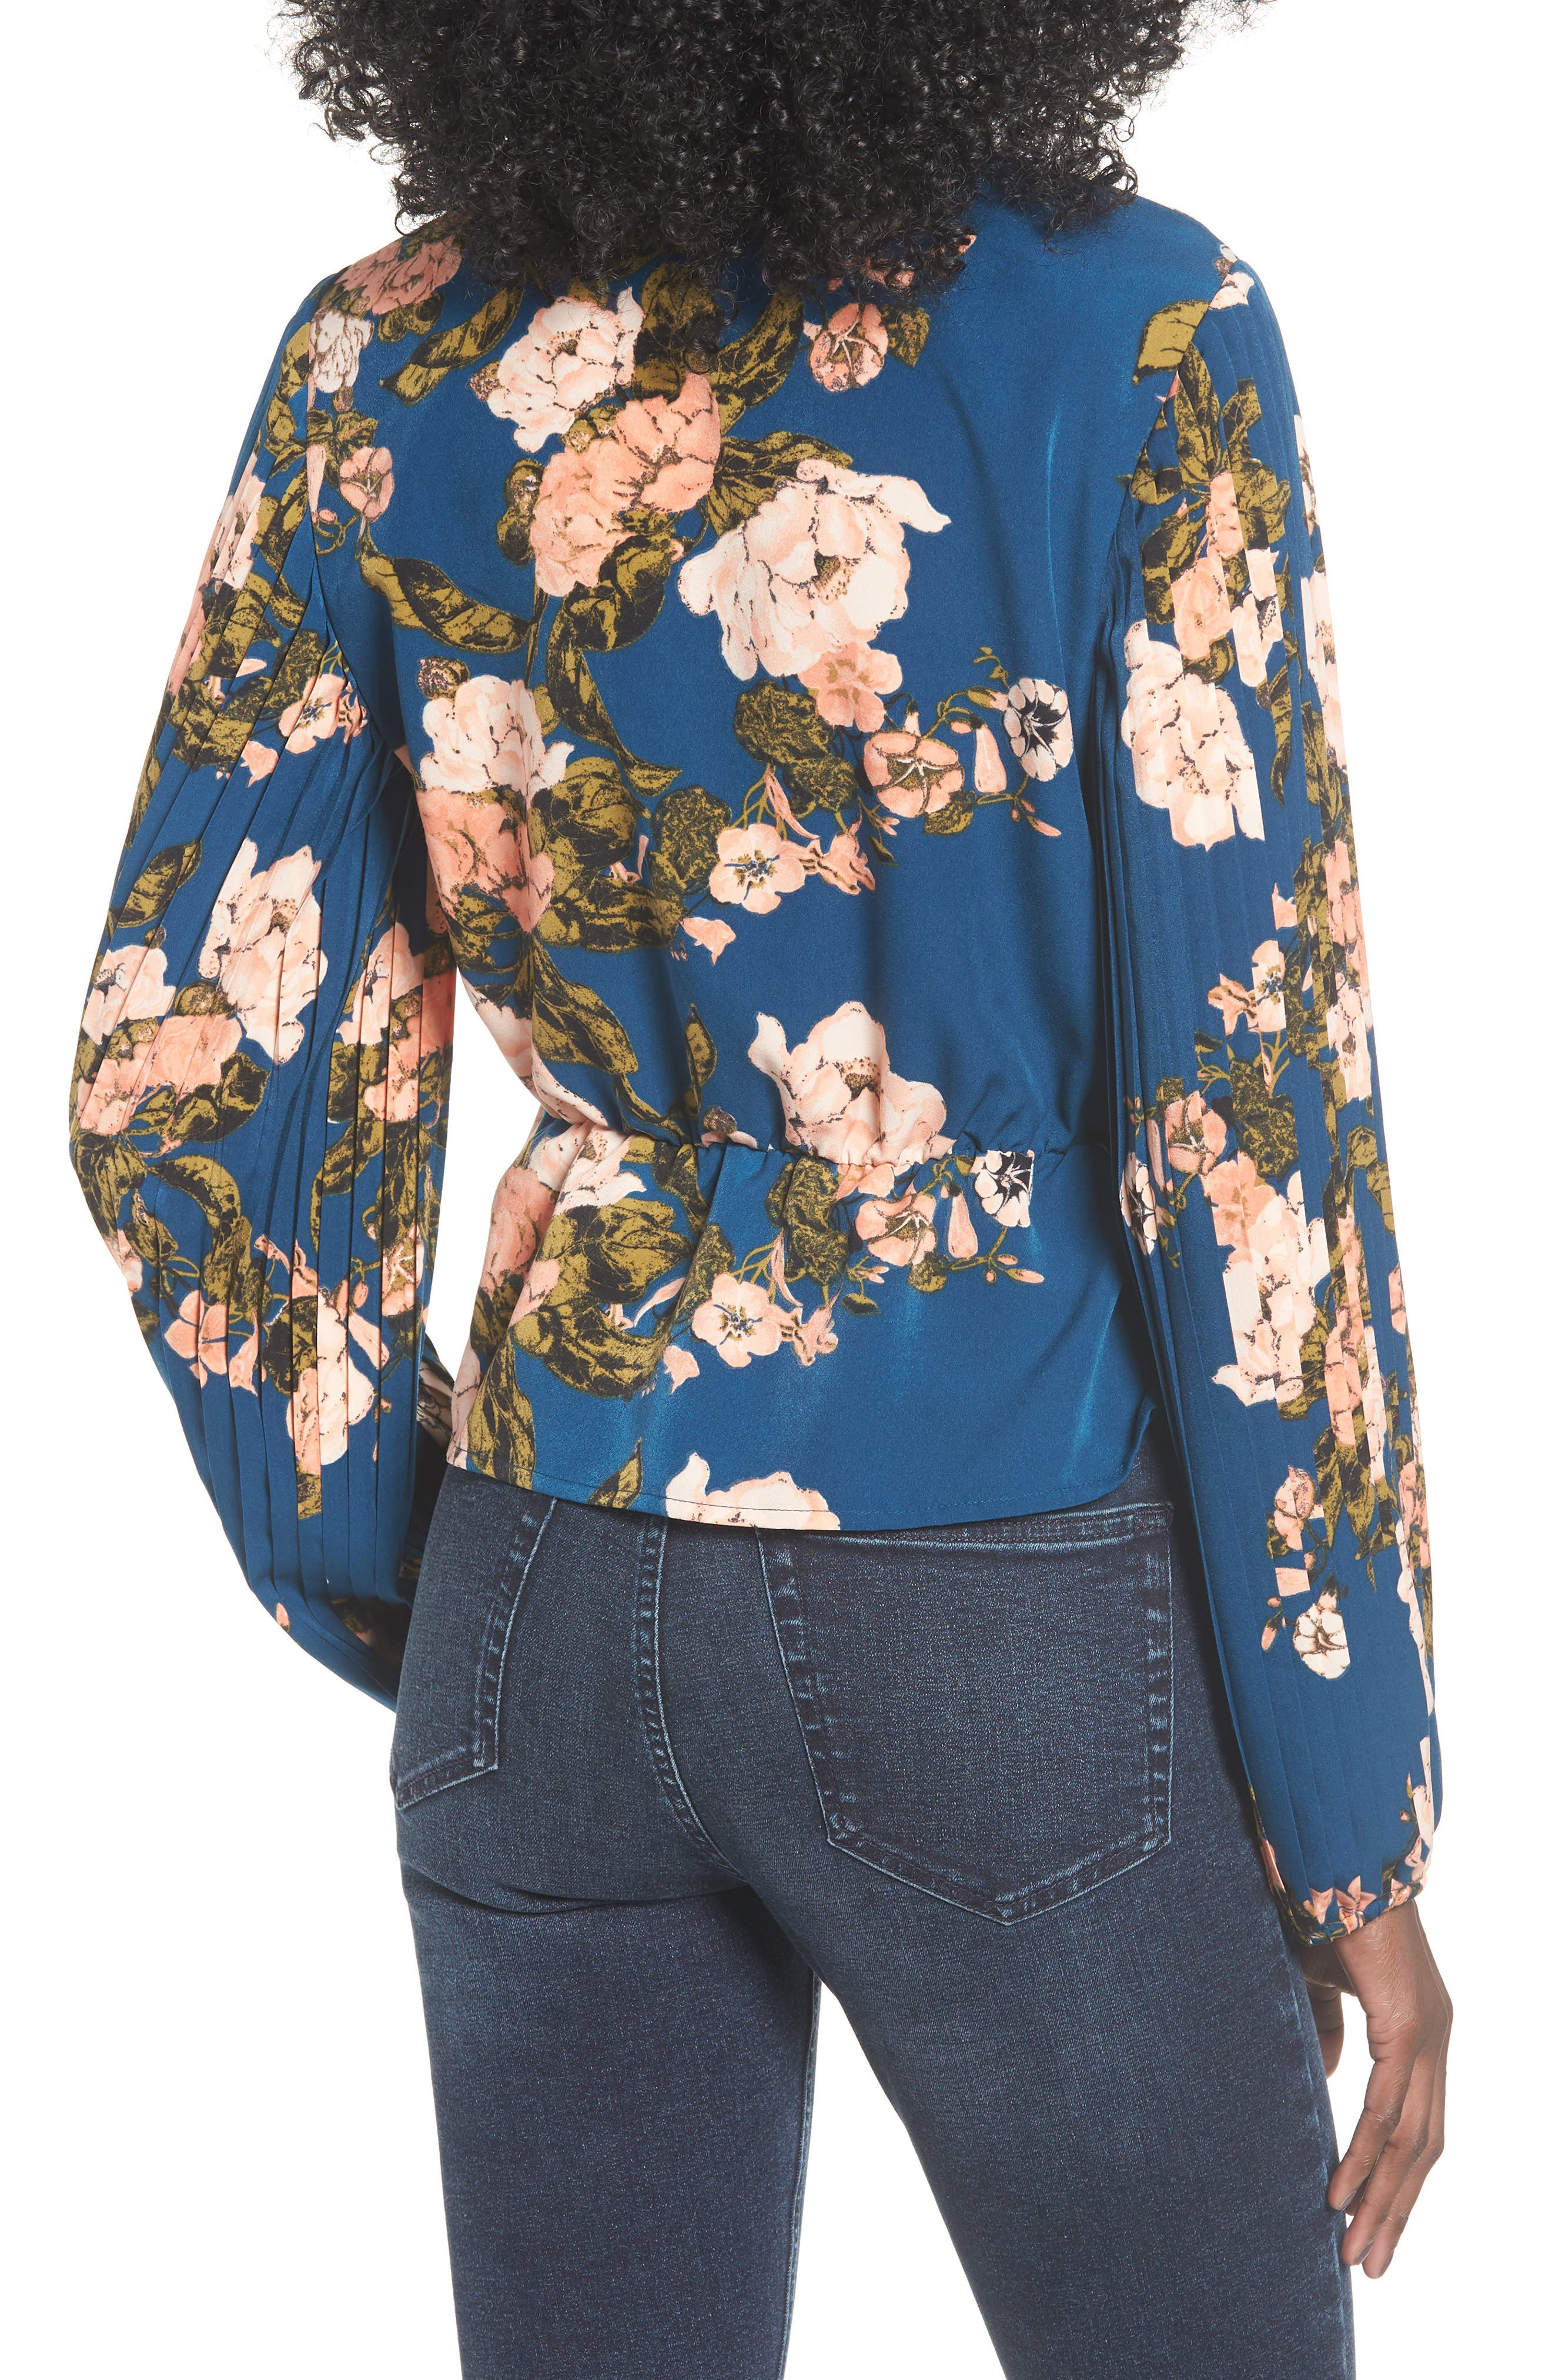 Pleated Sleeve Blouse,                             Alternate thumbnail 2, color,                             BLUE AURORA TONAL FLORAL